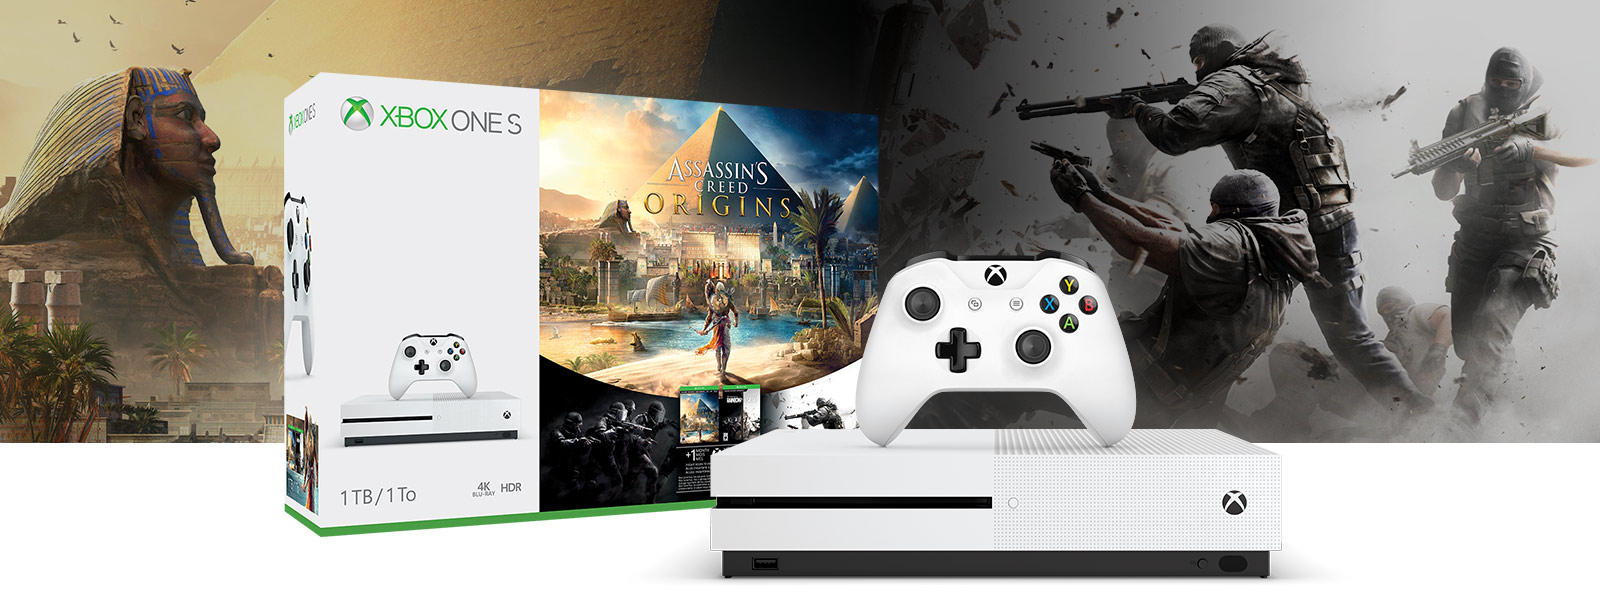 Assassin's Creed Origins Bonus 1 Tt Xbox One